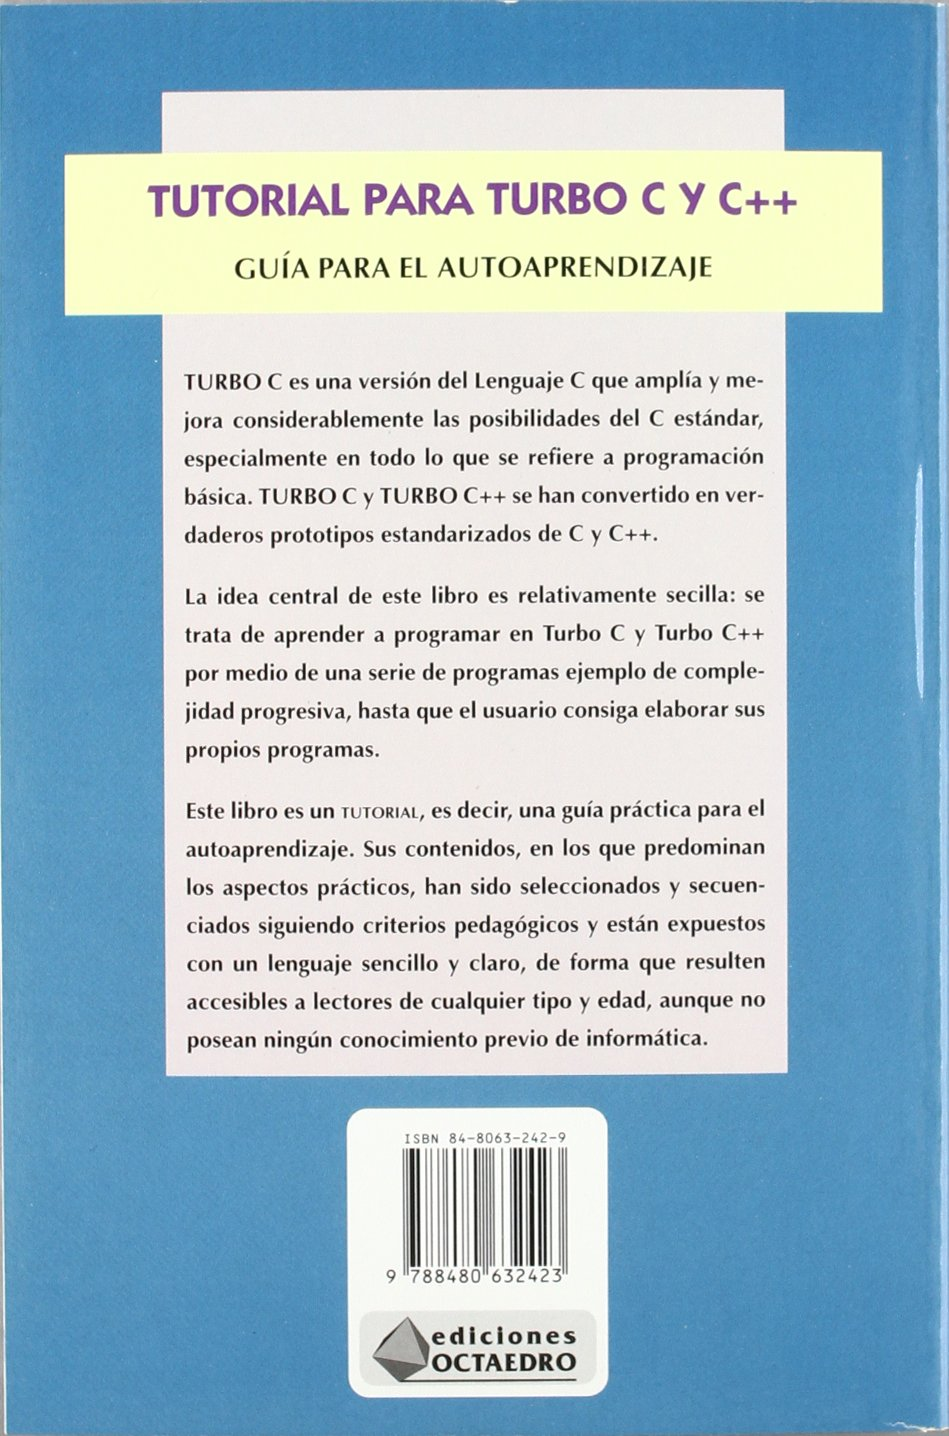 Tutorial Para Turbo C y C++ (Spanish Edition): Enrique Alonso Gutierrez: 9788480632423: Amazon.com: Books